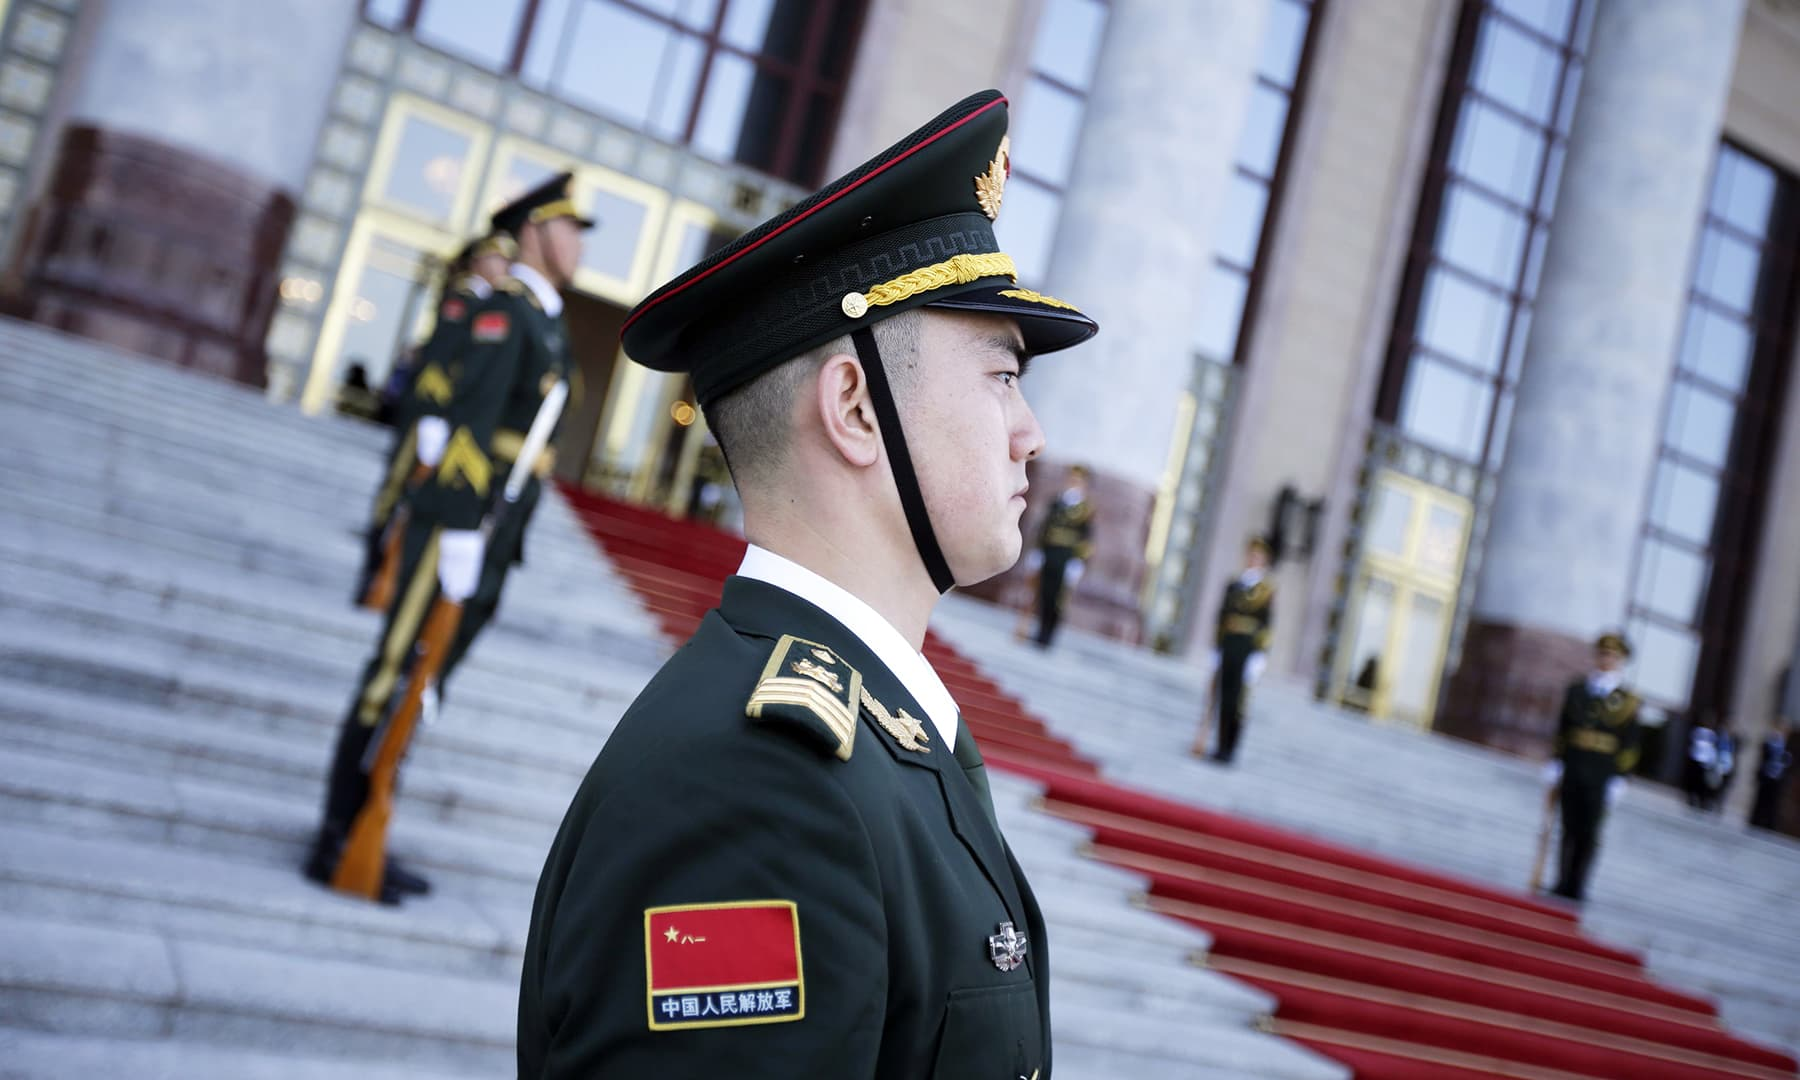 A member of the Chinese Honour Guard pictured outside the Great Hall of the People, in Beijing, before the start of the welcome banquet. — AFP